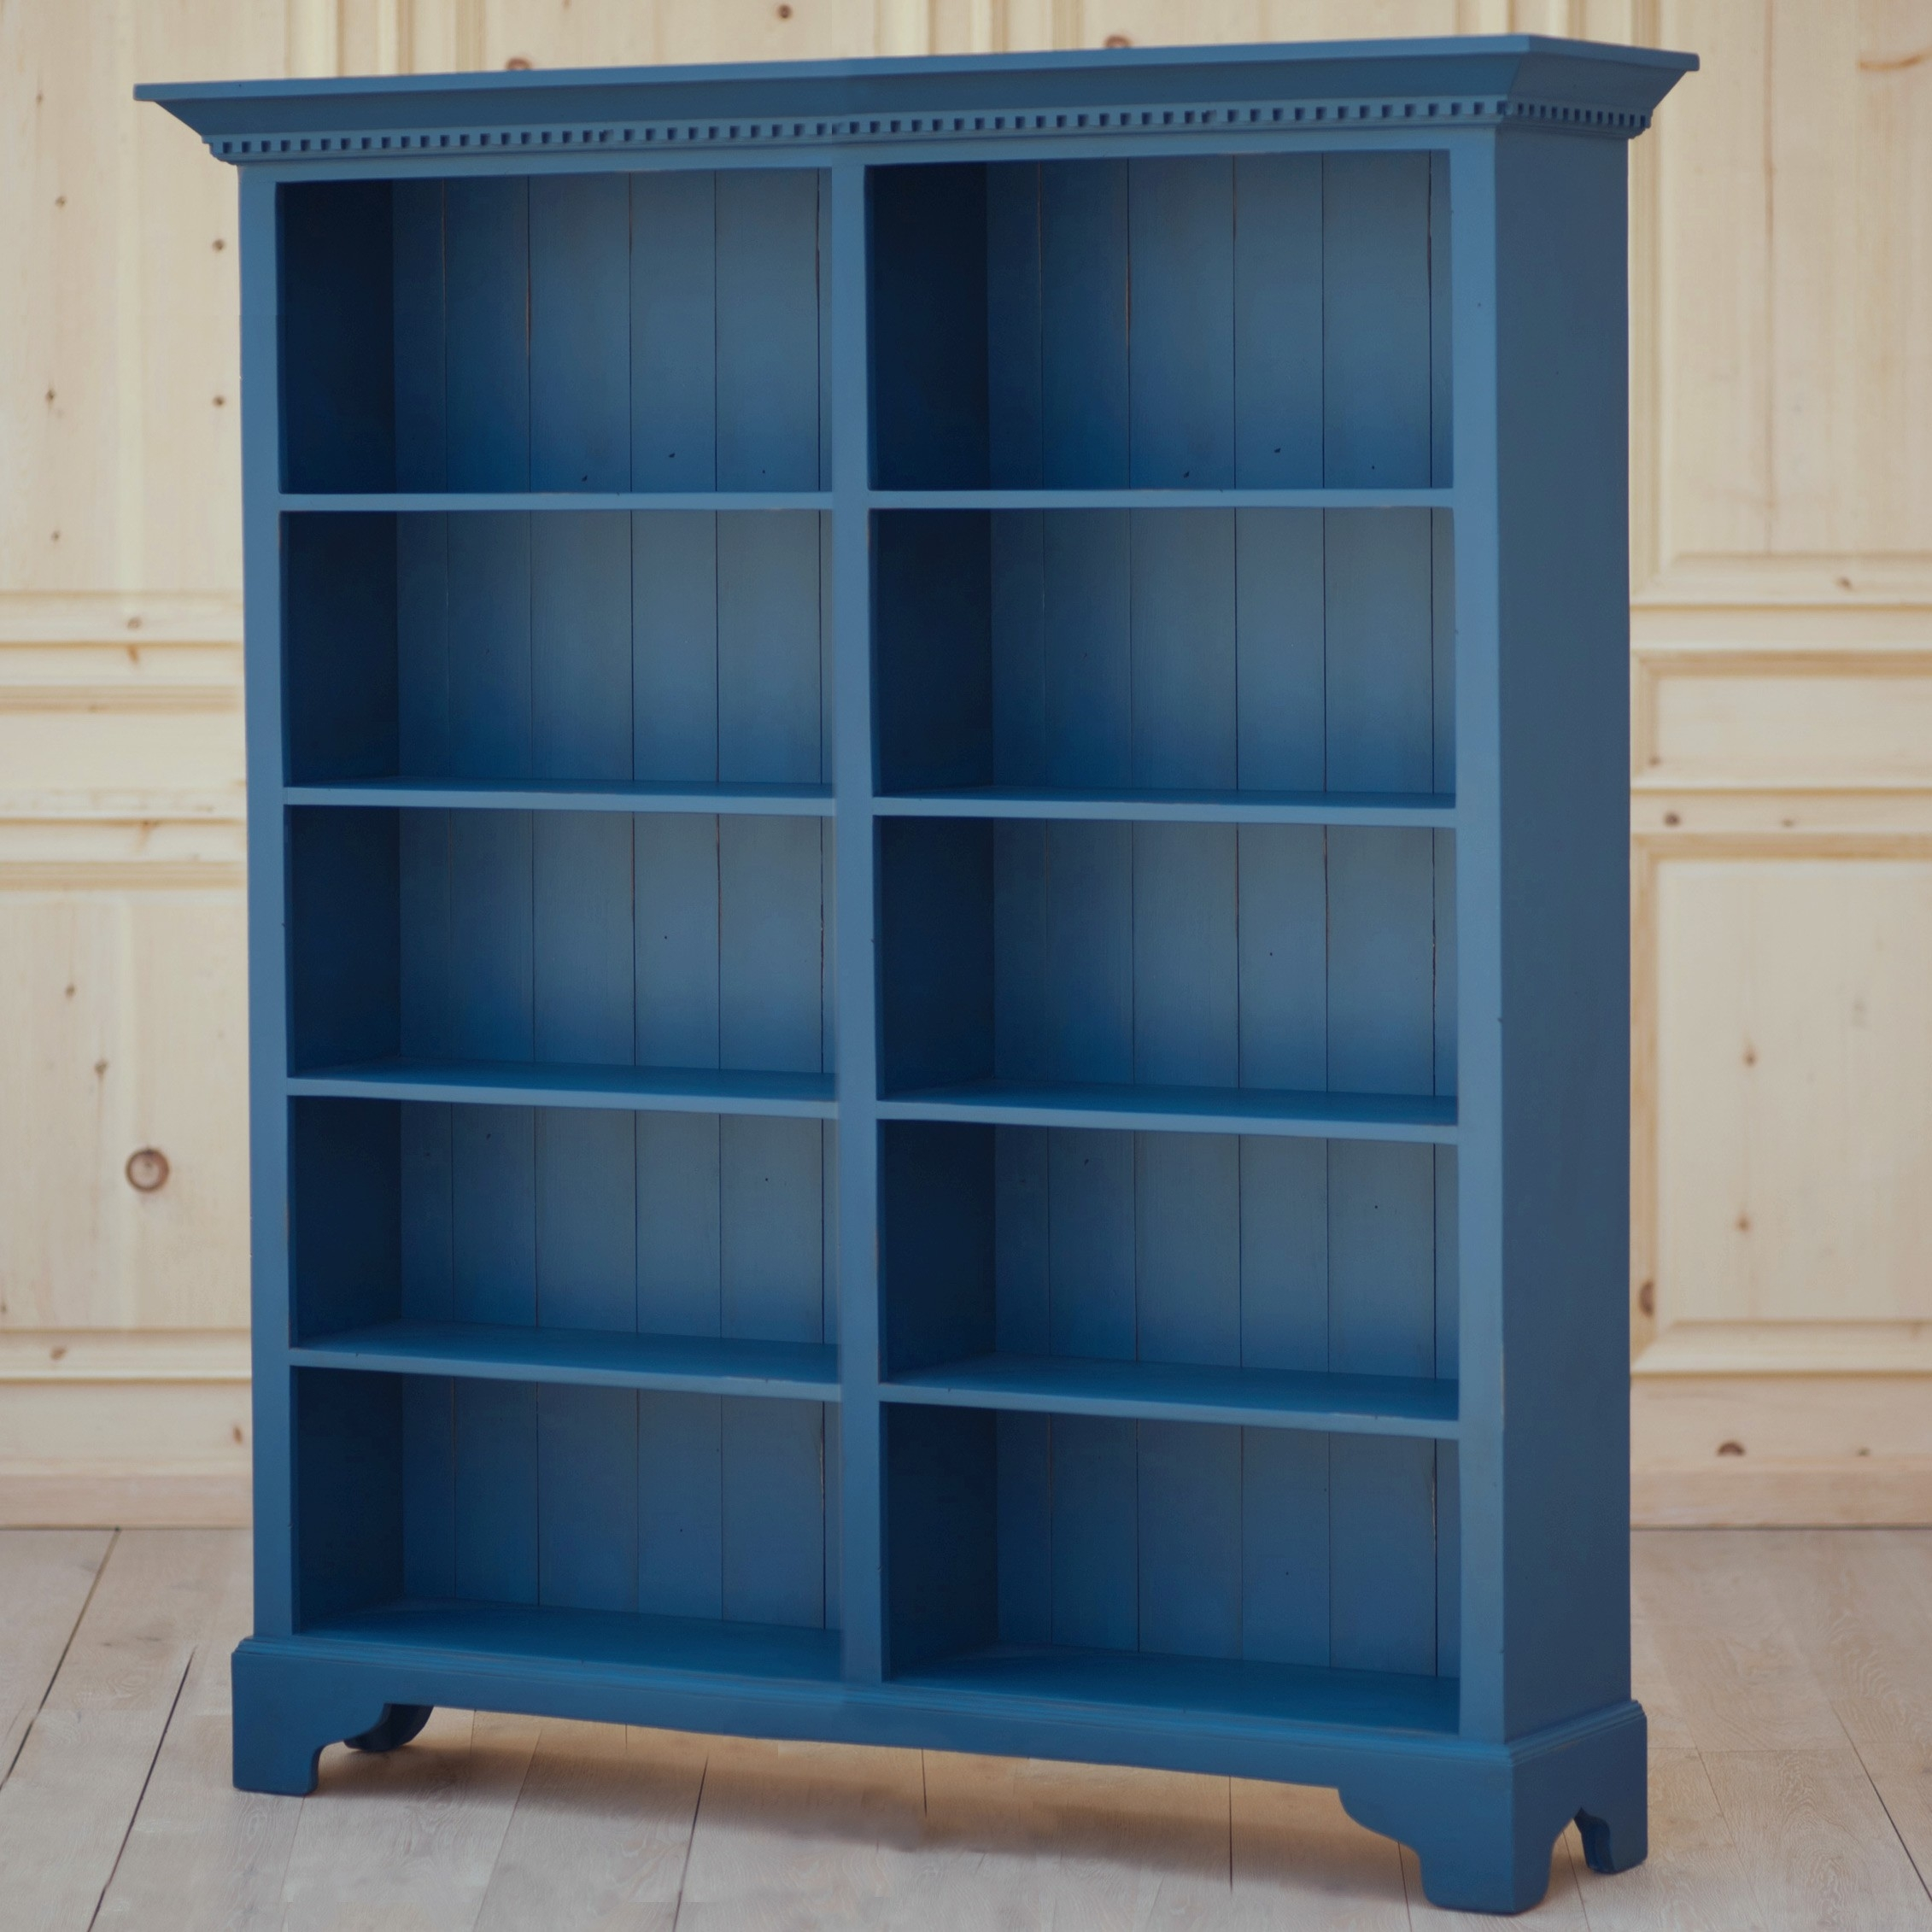 Coastal Vintage And Farmhouse Inspired Bookcases Armoires And With Regard To Handmade Bookcase (View 5 of 15)